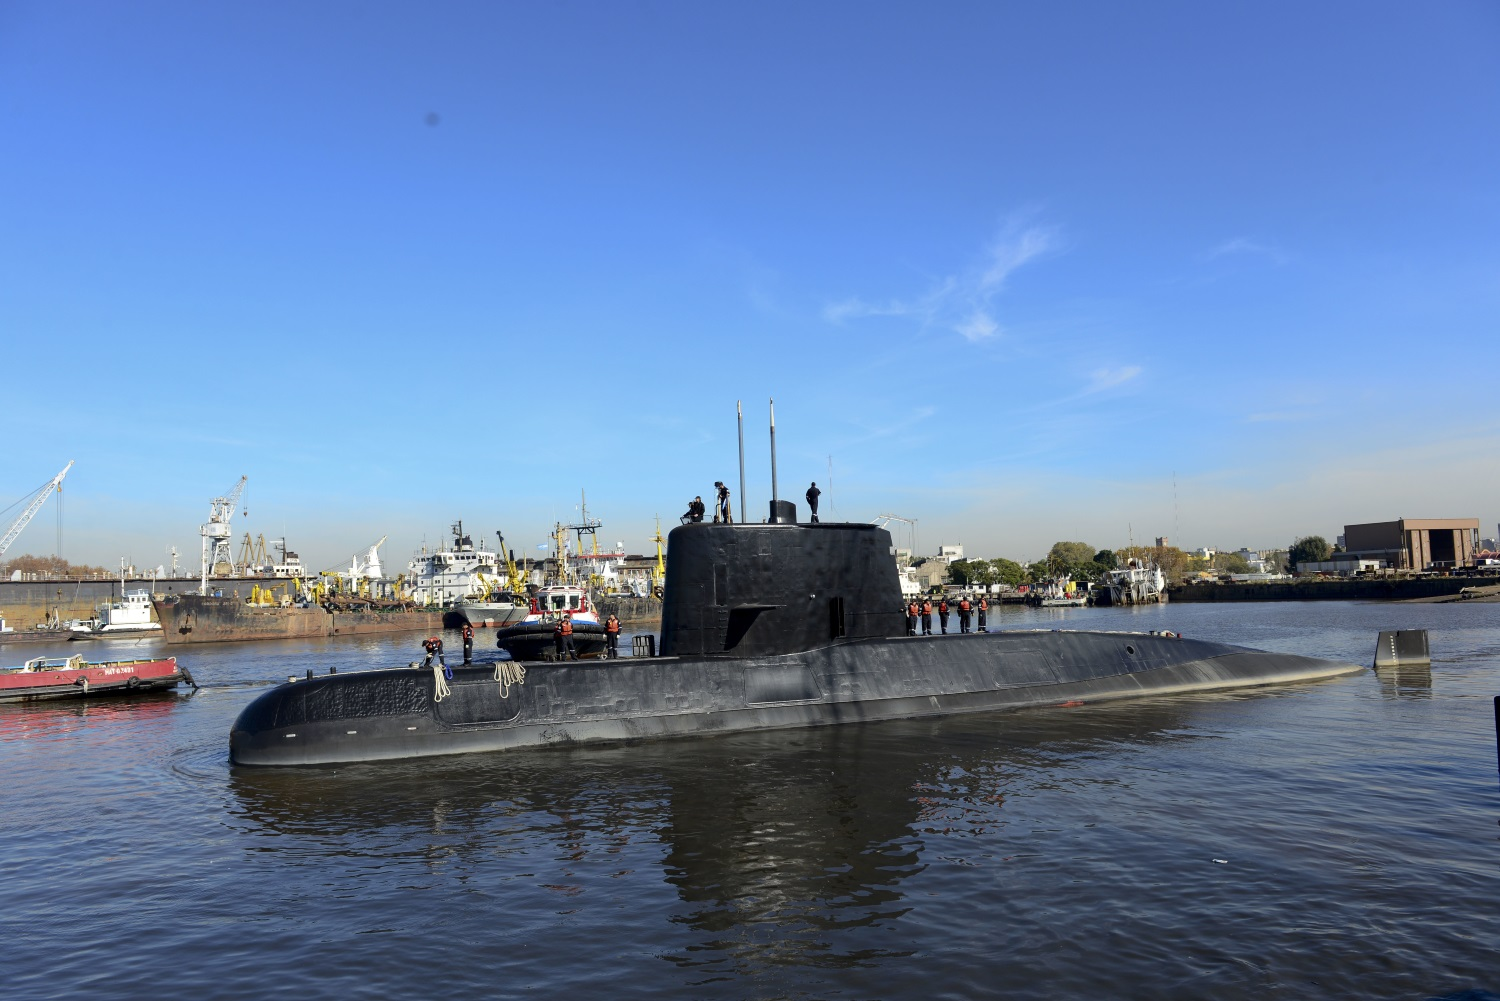 This 2014 photo provided by the Argentina Navy shows the ARA San Juan, a German-built diesel-electric vessel, docked in Buenos Aires, Argentina. Argentina's Navy said Friday, Nov. 17, 2017, it has lost contact with its ARA San Juan submarine off the country's southern coast. (Argentina Navy via AP)